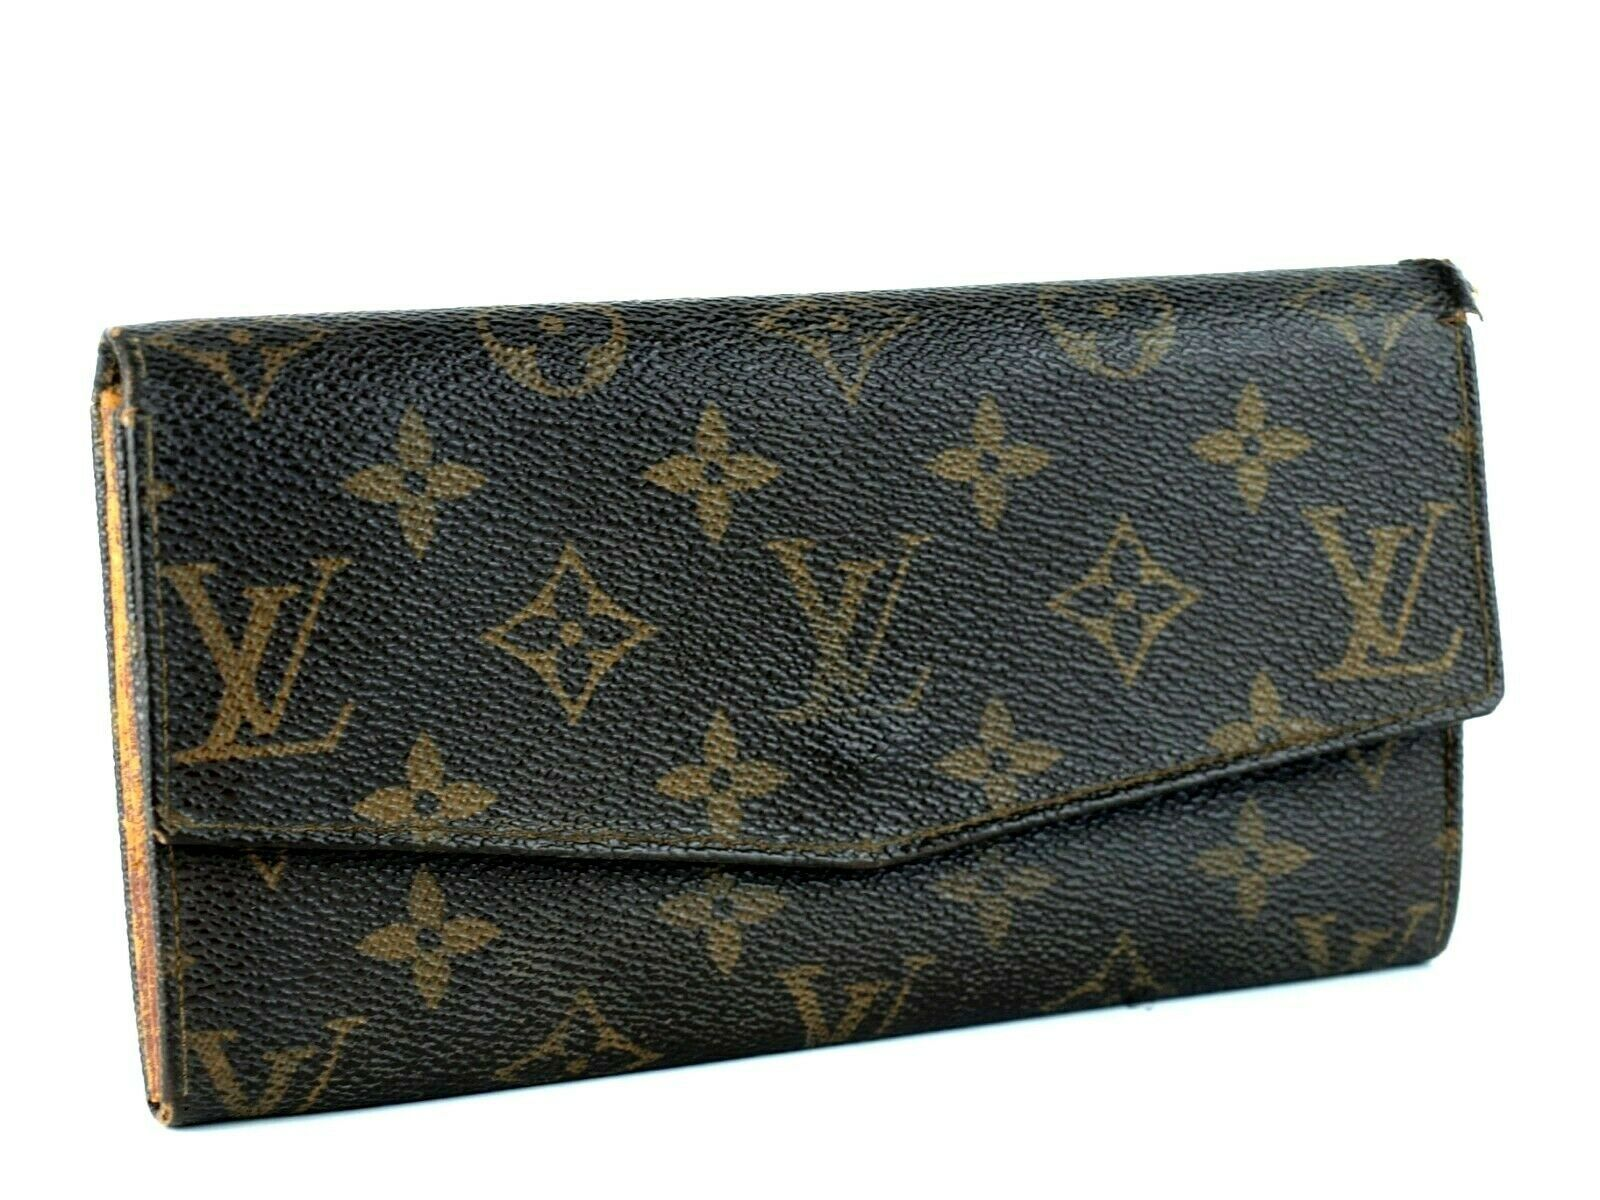 Primary image for Auth LOUIS VUITTON Monogram Leather Bifold Envelope Long Wallet TH822 France